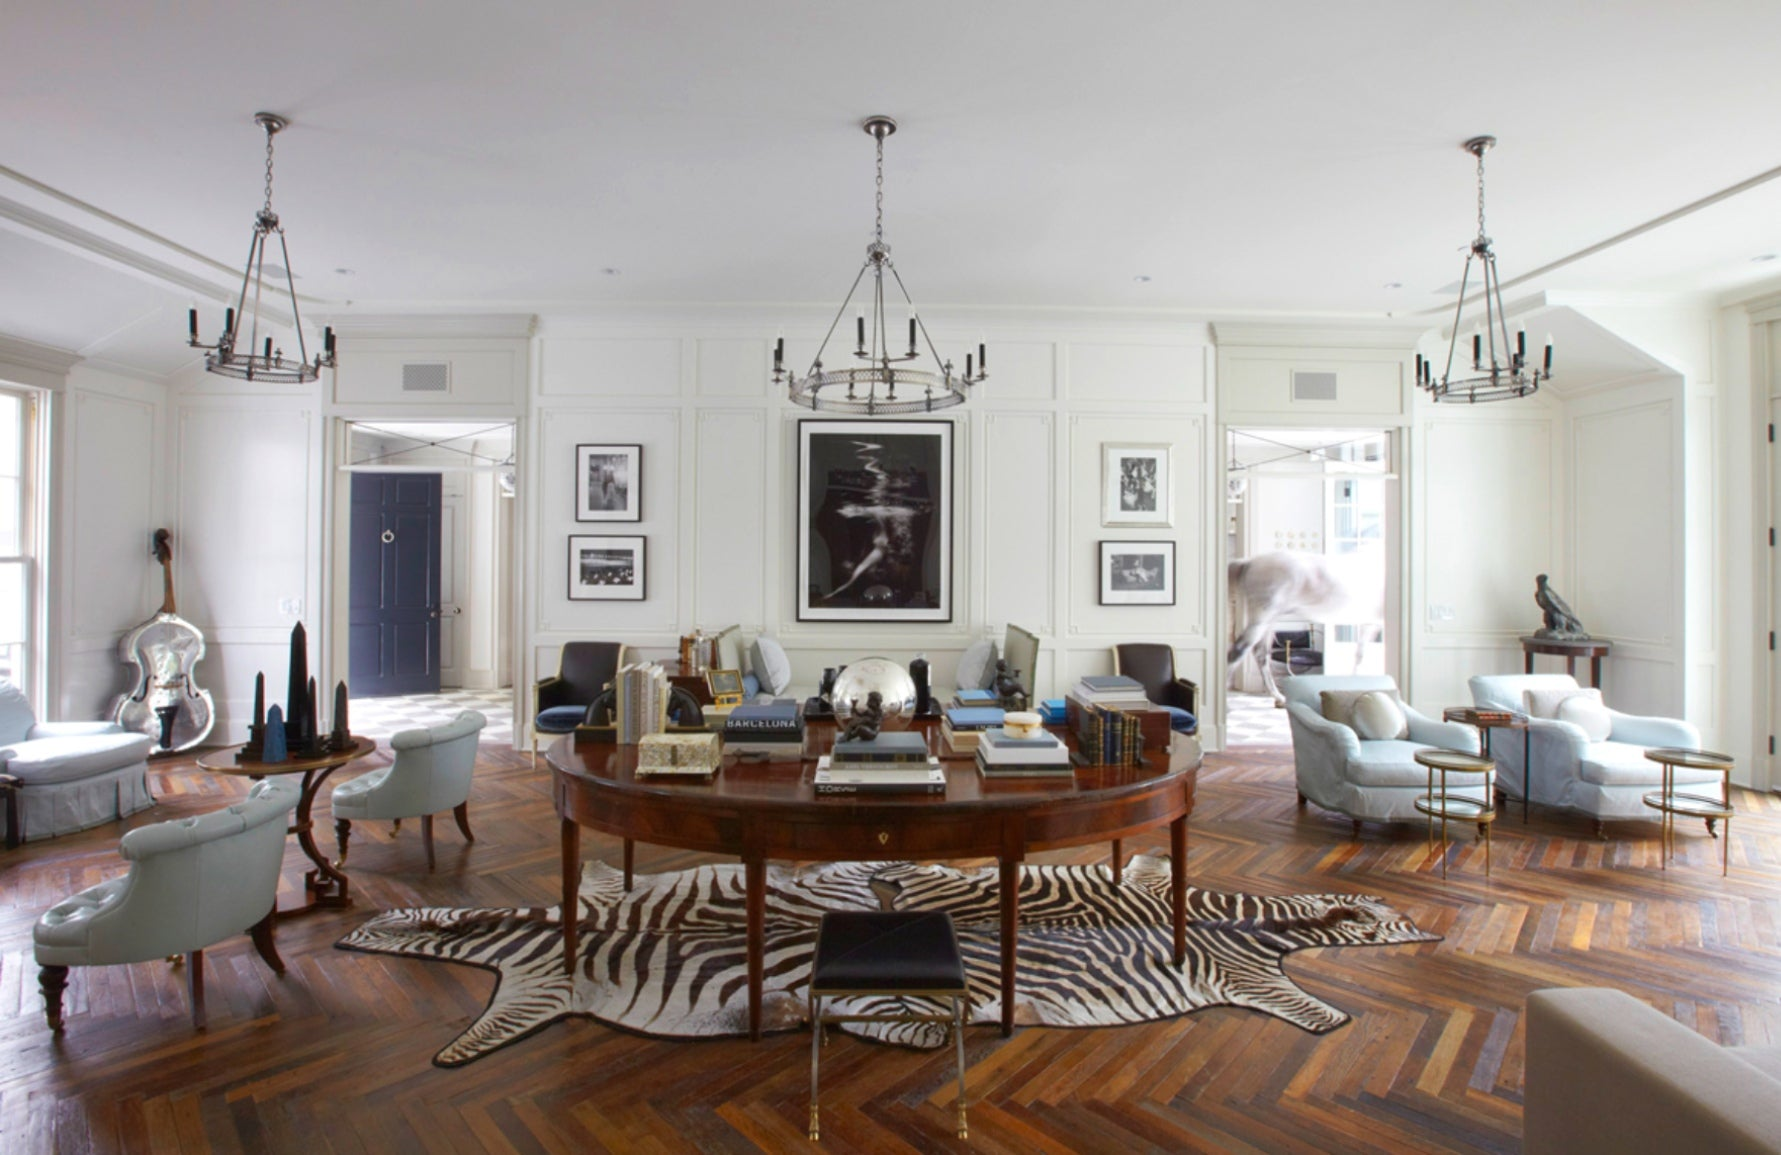 Top 10 American Interior Designers You Need To Know - Windsor Smith - LuxDeco Style Guide